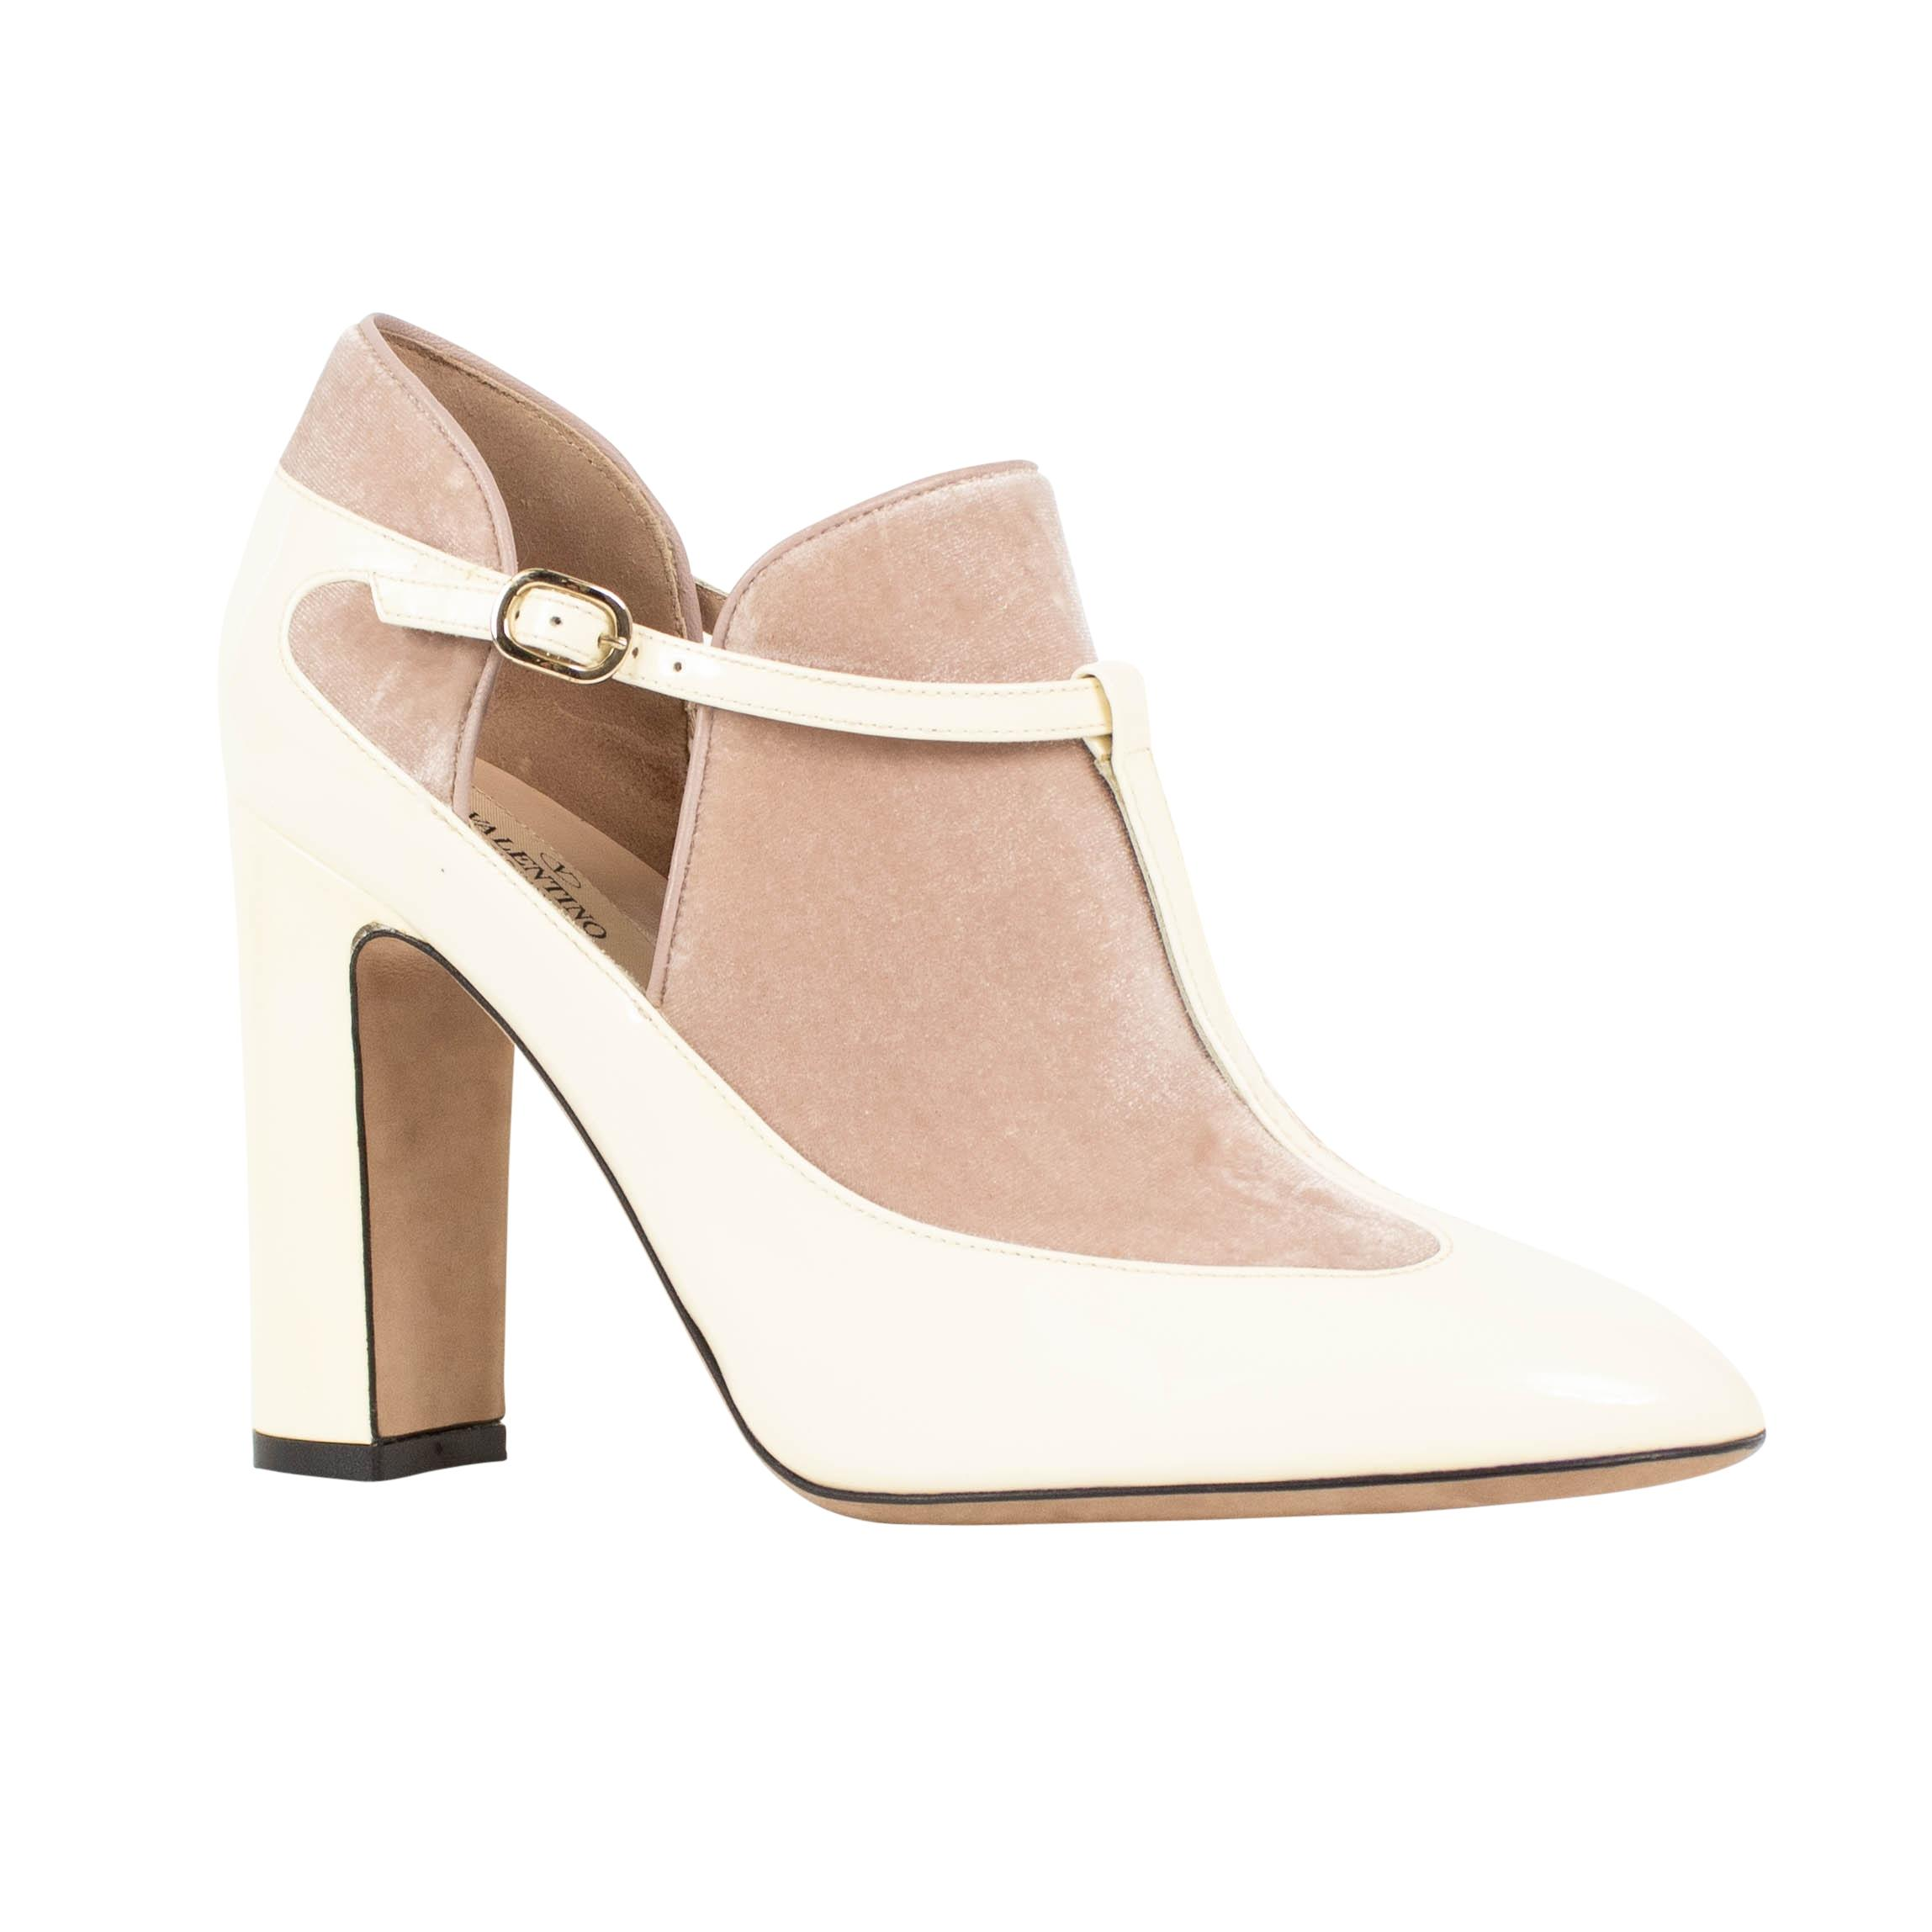 Valentino Ivory Leather Tstrap Buckle Heel with Nude Suede Pumps Size US 8.5 Regular (M, B)